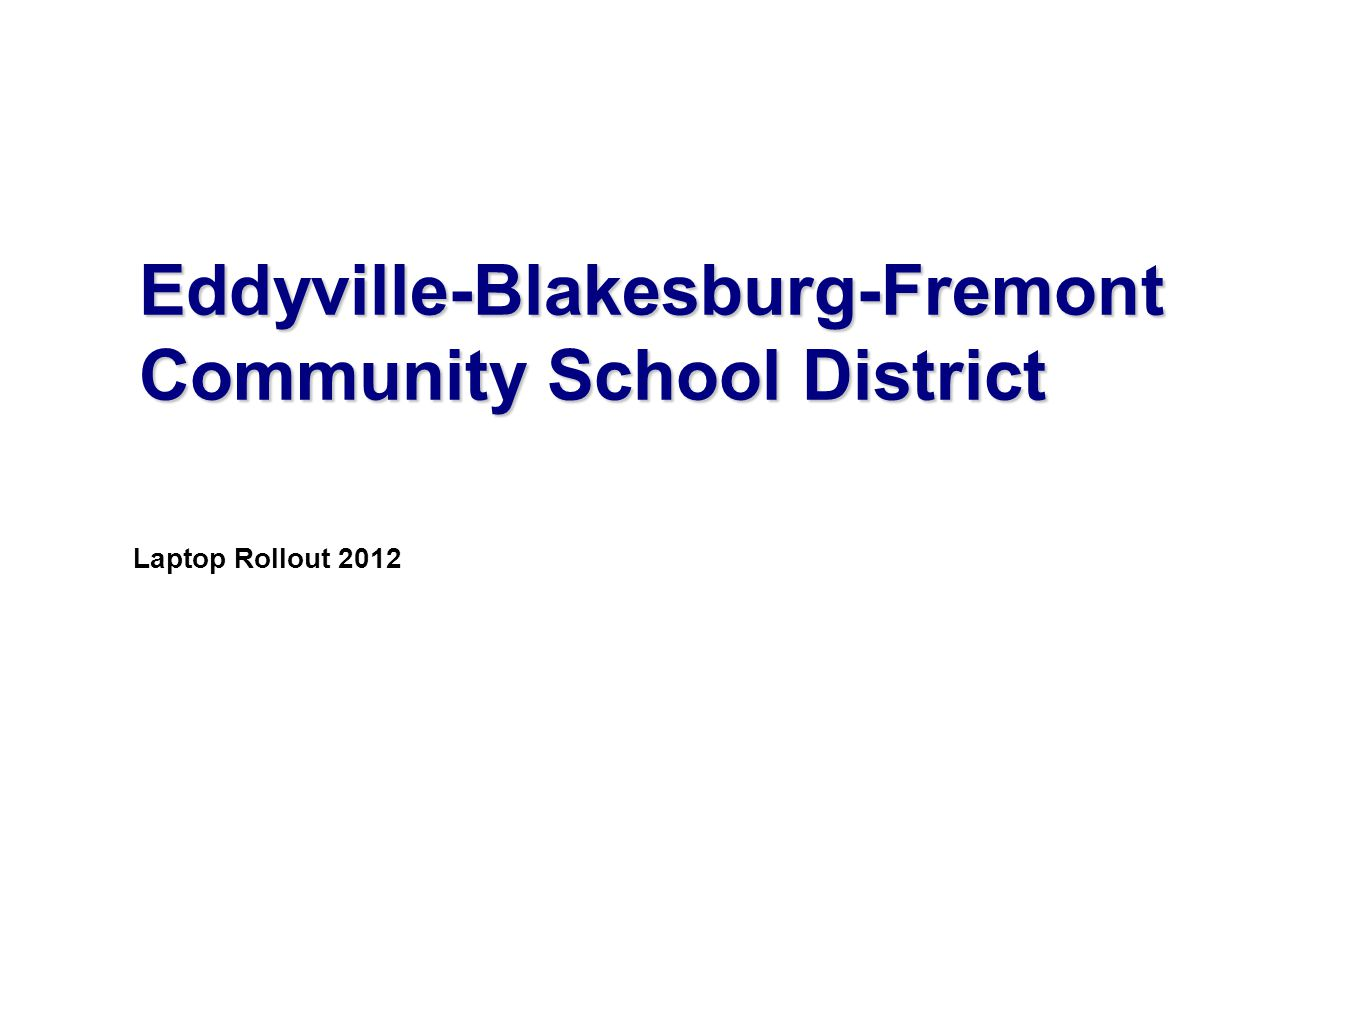 Laptop Rollout 2012 Eddyville-Blakesburg-Fremont Community School District